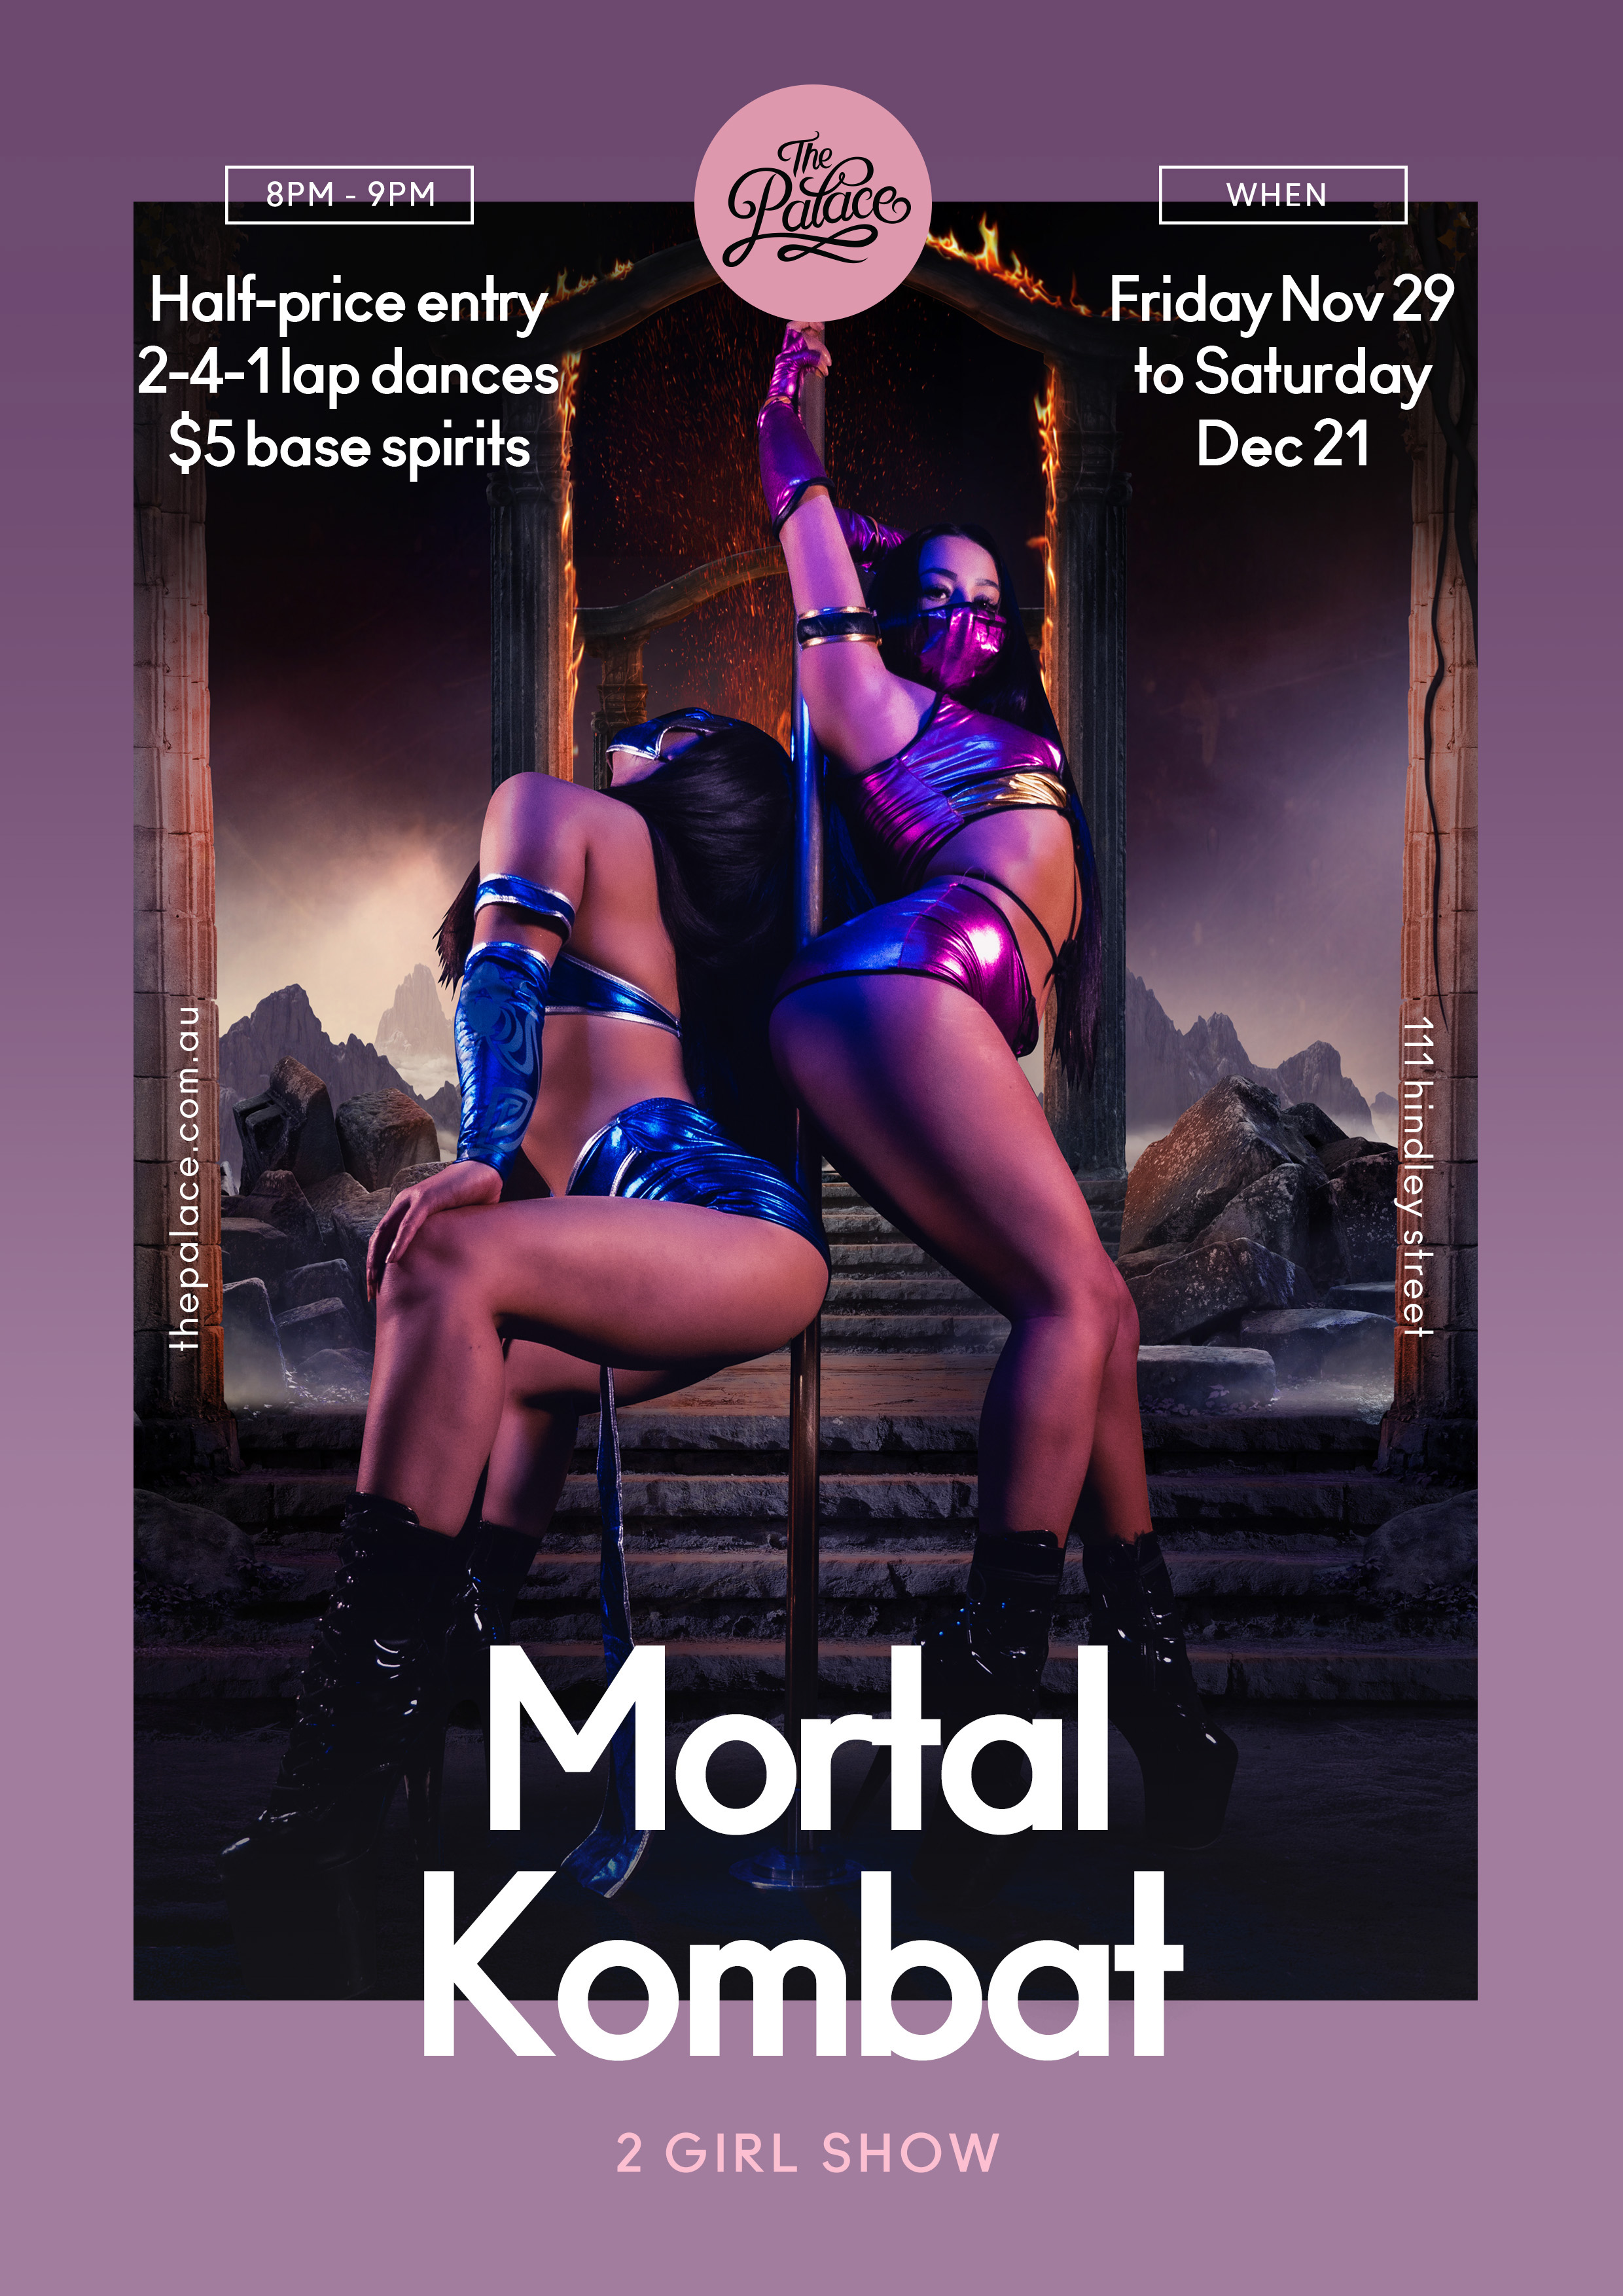 Mortal Combat - The Palace Adelaide, 111 Hindley St, Adelaide